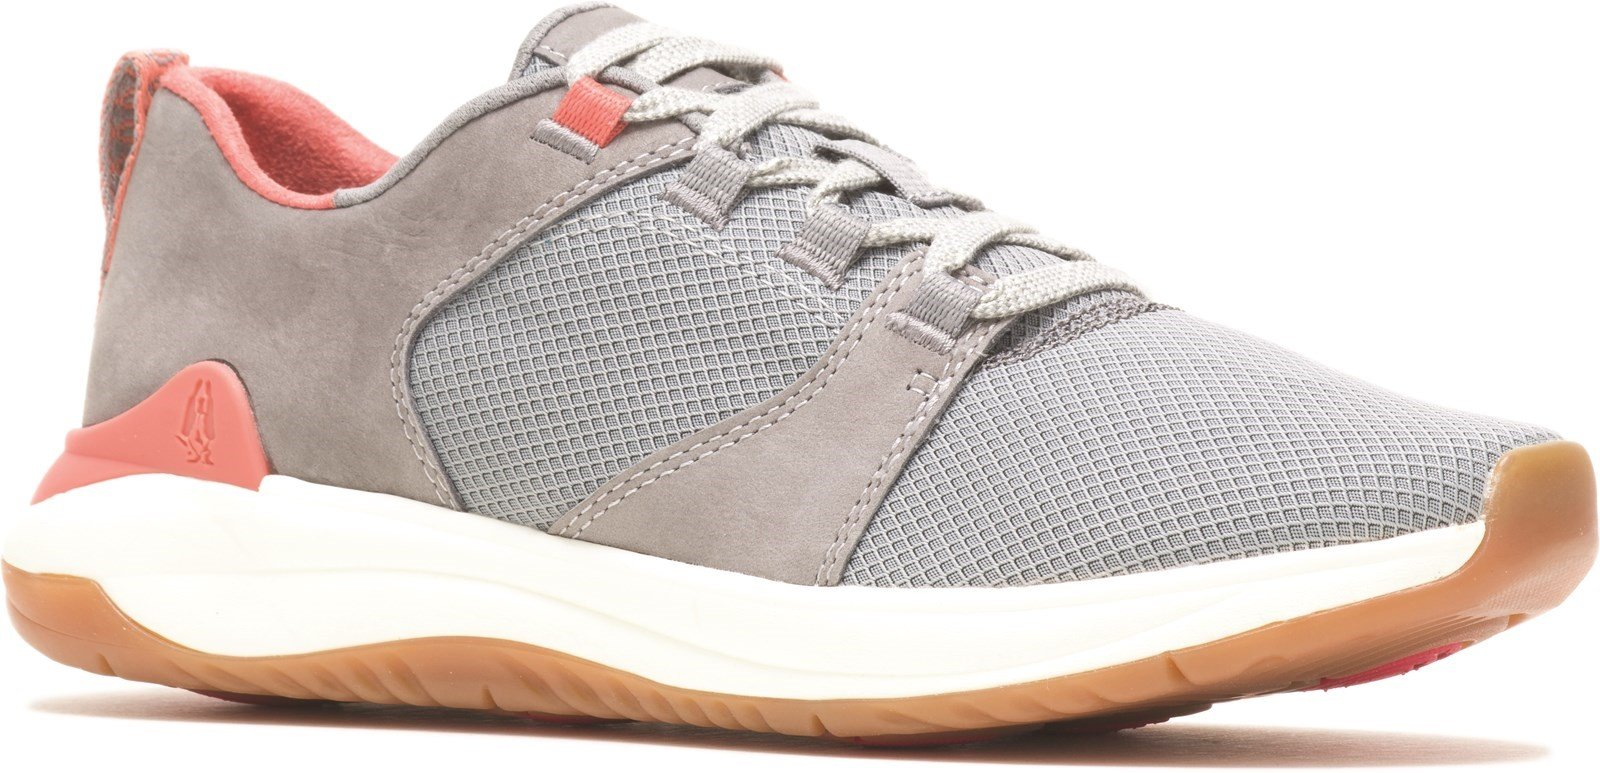 Hush Puppies Women's Basil Ladies Lace Trainer Various Colours 31287 - Frost Grey 3